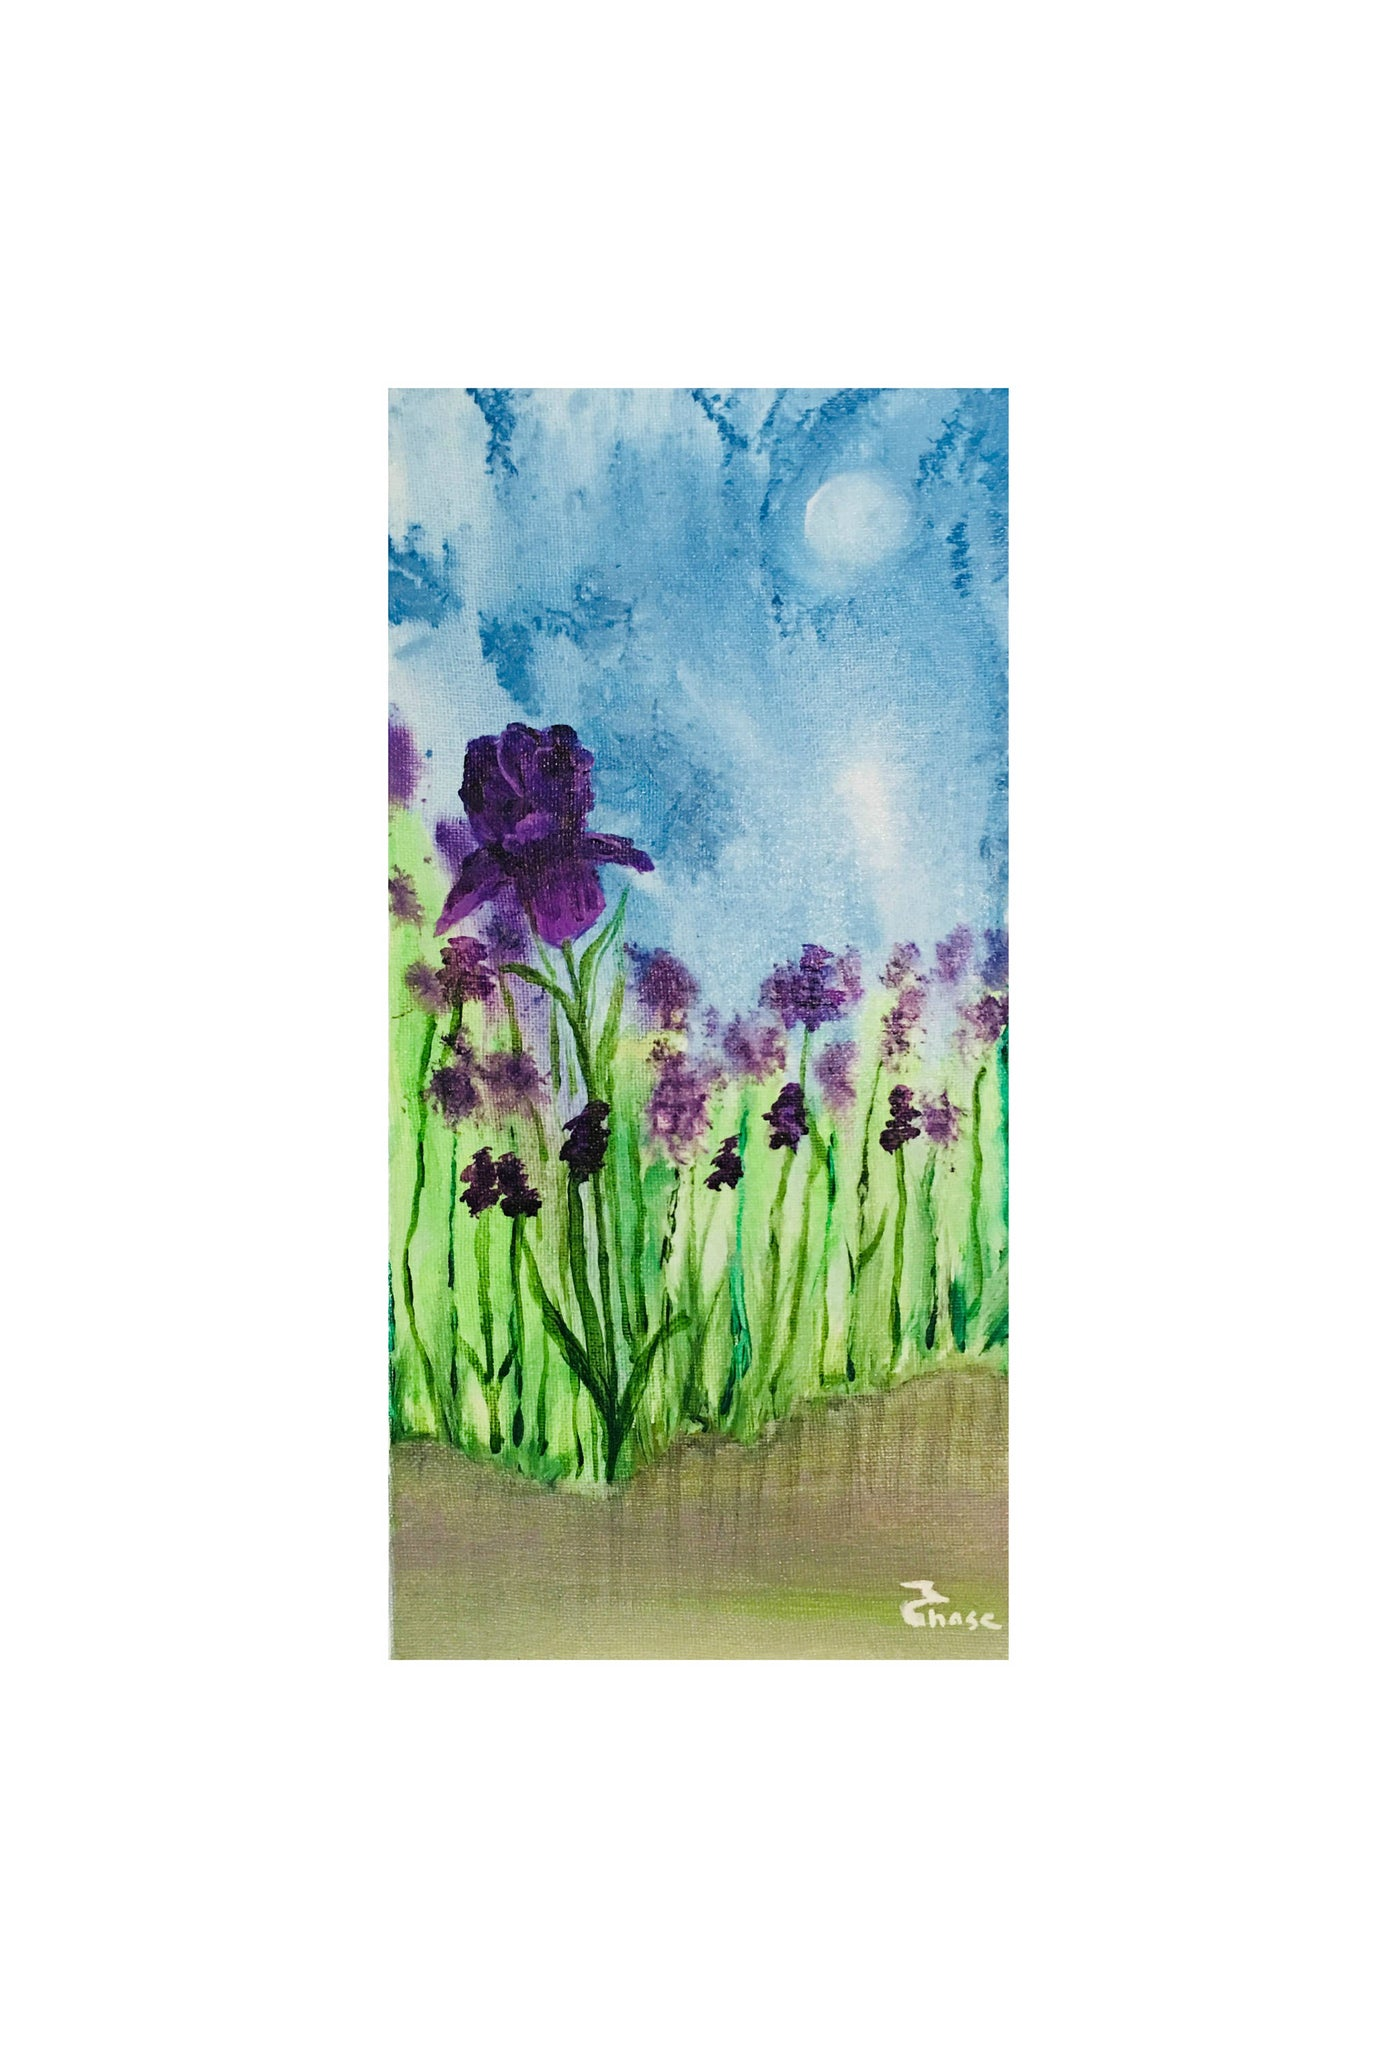 Acrylic painting flower paintings nature acrylic on canvas acrylic painting flower paintings nature acrylic on canvas original wall art izmirmasajfo